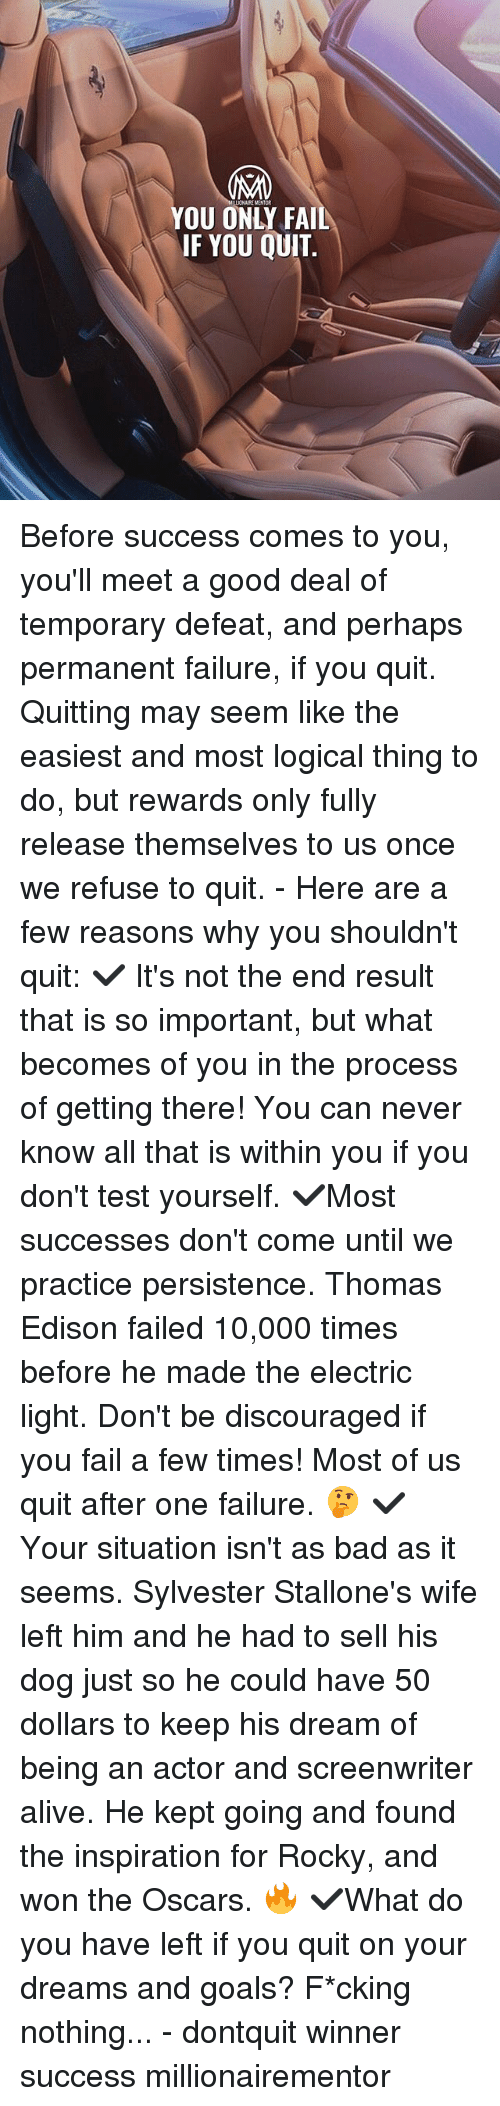 Alive, Bad, and Fail: YOU ONLY FAIL  IF YOU QUIT Before success comes to you, you'll meet a good deal of temporary defeat, and perhaps permanent failure, if you quit. Quitting may seem like the easiest and most logical thing to do, but rewards only fully release themselves to us once we refuse to quit. - Here are a few reasons why you shouldn't quit: ✔️ It's not the end result that is so important, but what becomes of you in the process of getting there! You can never know all that is within you if you don't test yourself. ✔️Most successes don't come until we practice persistence. Thomas Edison failed 10,000 times before he made the electric light. Don't be discouraged if you fail a few times! Most of us quit after one failure. 🤔 ✔️ Your situation isn't as bad as it seems. Sylvester Stallone's wife left him and he had to sell his dog just so he could have 50 dollars to keep his dream of being an actor and screenwriter alive. He kept going and found the inspiration for Rocky, and won the Oscars. 🔥 ✔️What do you have left if you quit on your dreams and goals? F*cking nothing... - dontquit winner success millionairementor